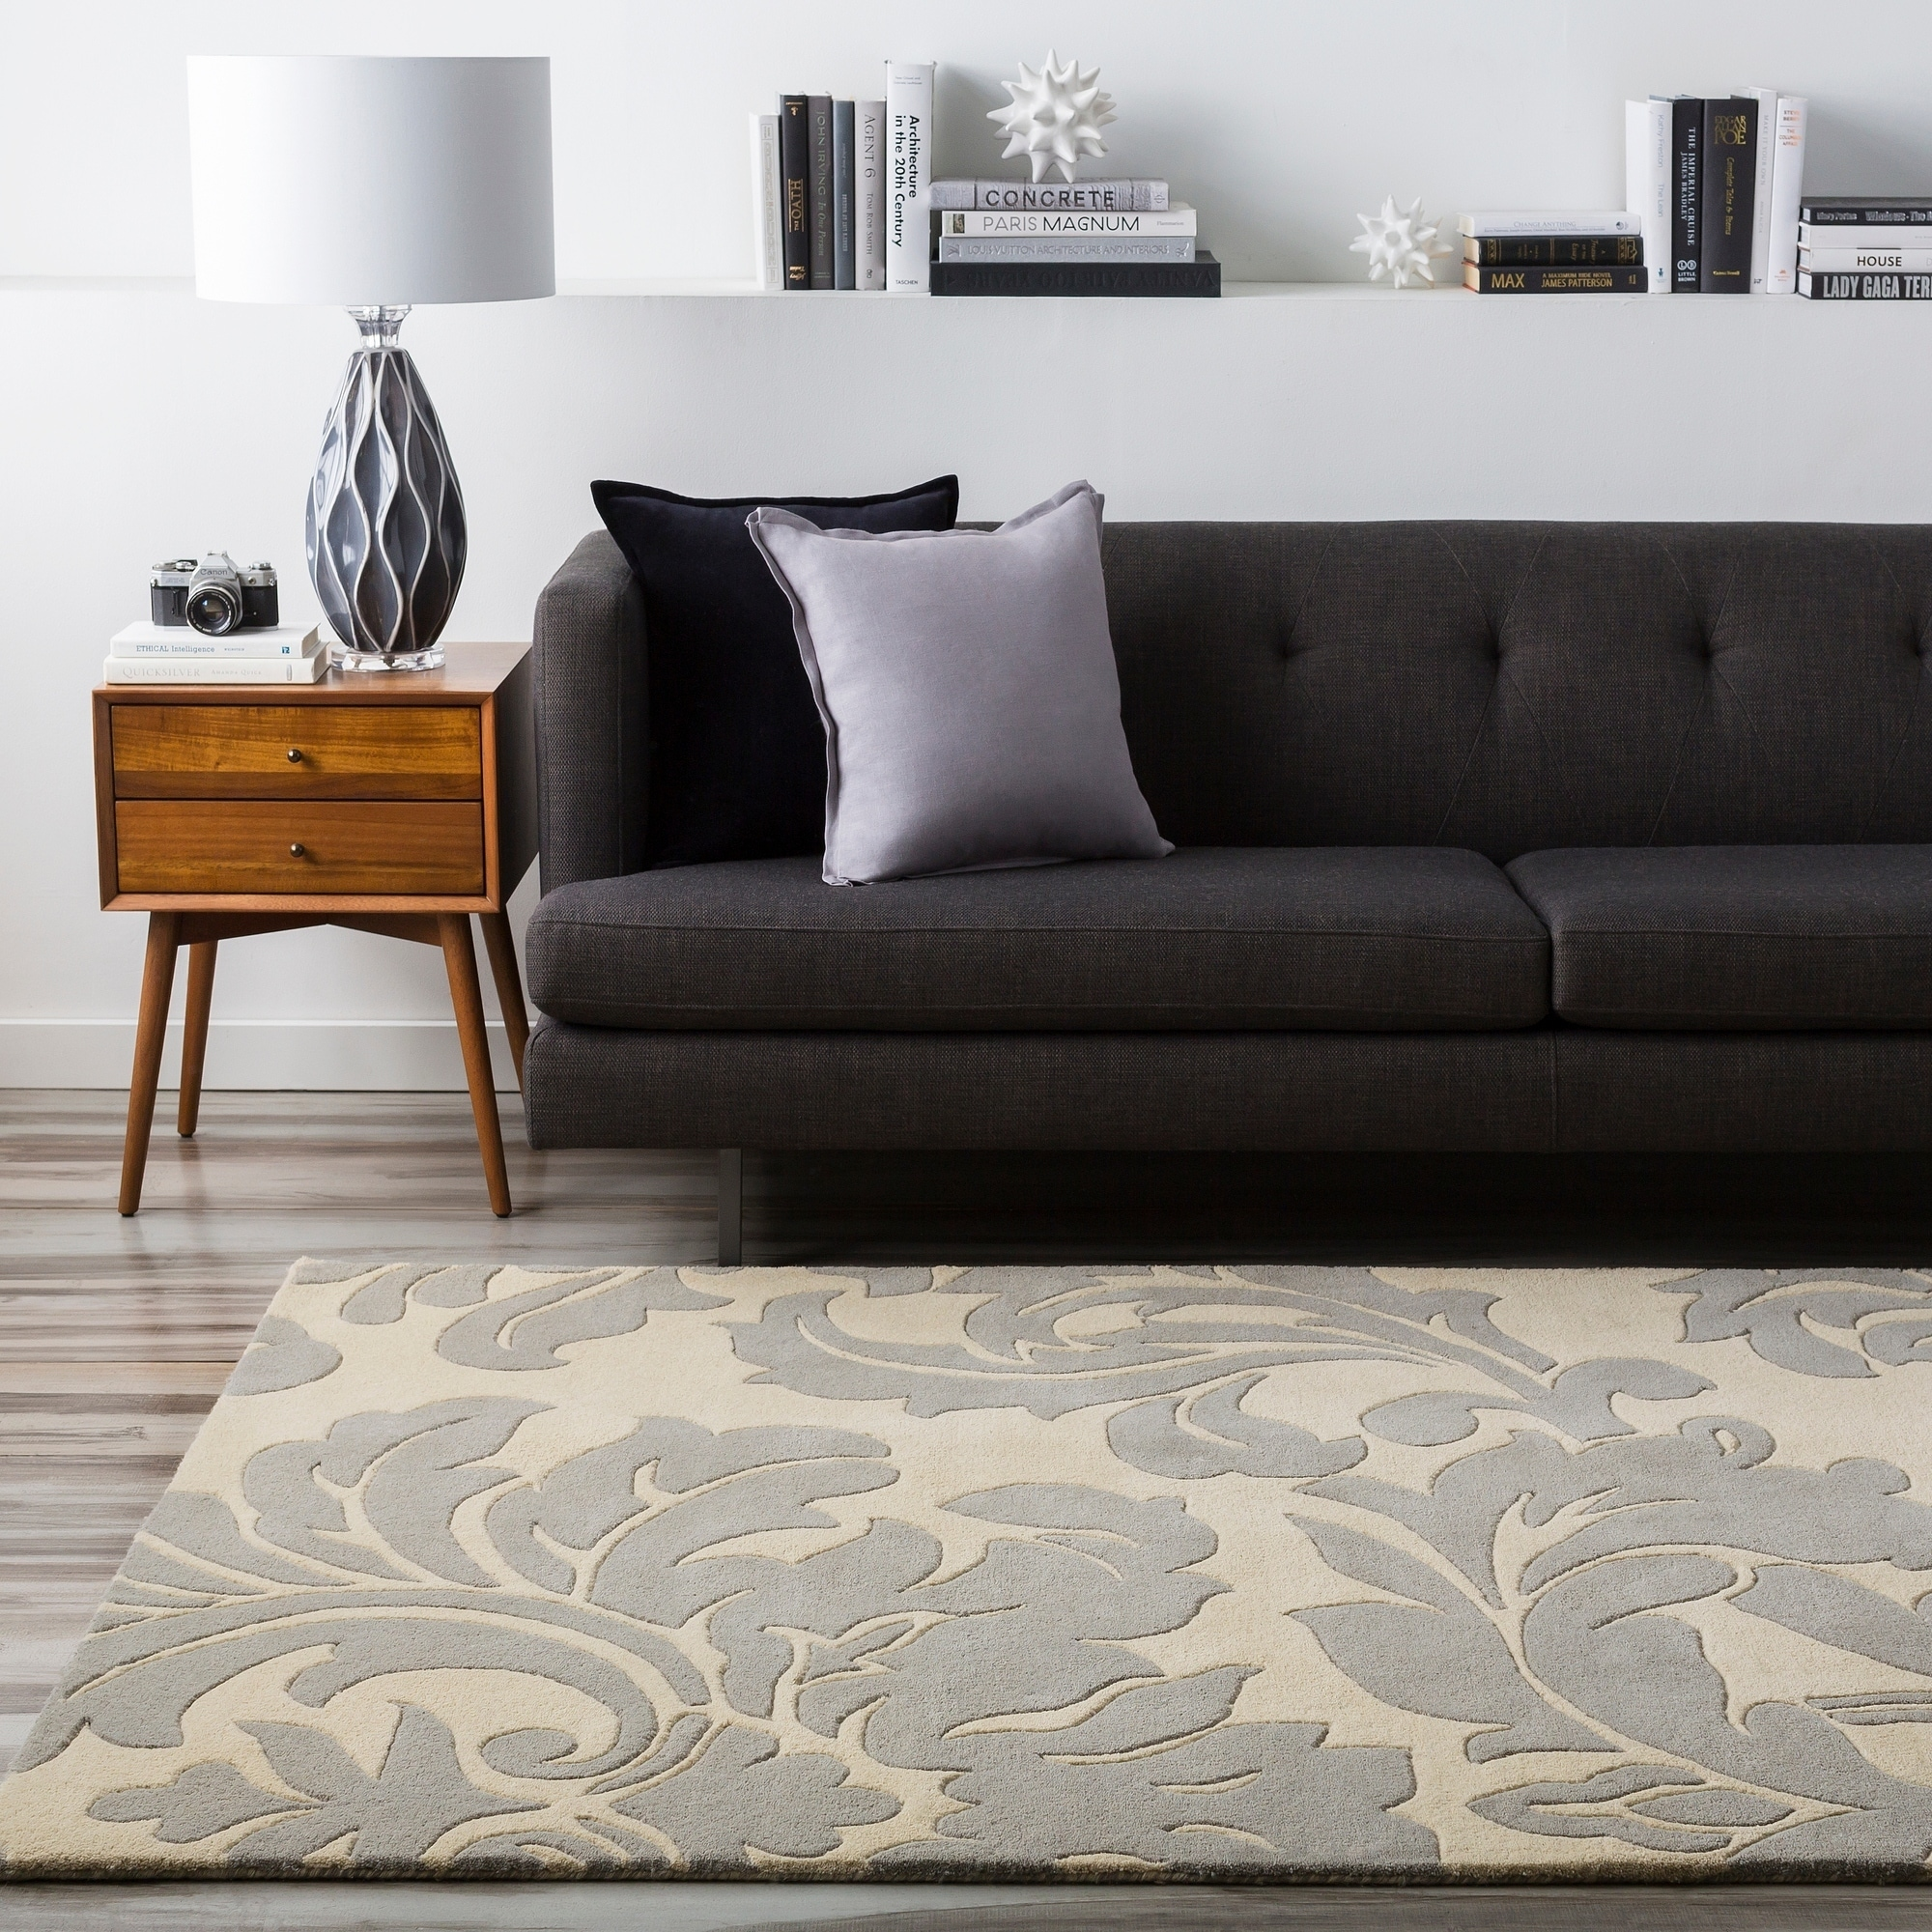 Hand-tufted Balikesir Bay Leaf Wool Rug (5' x 8'), Beige,...